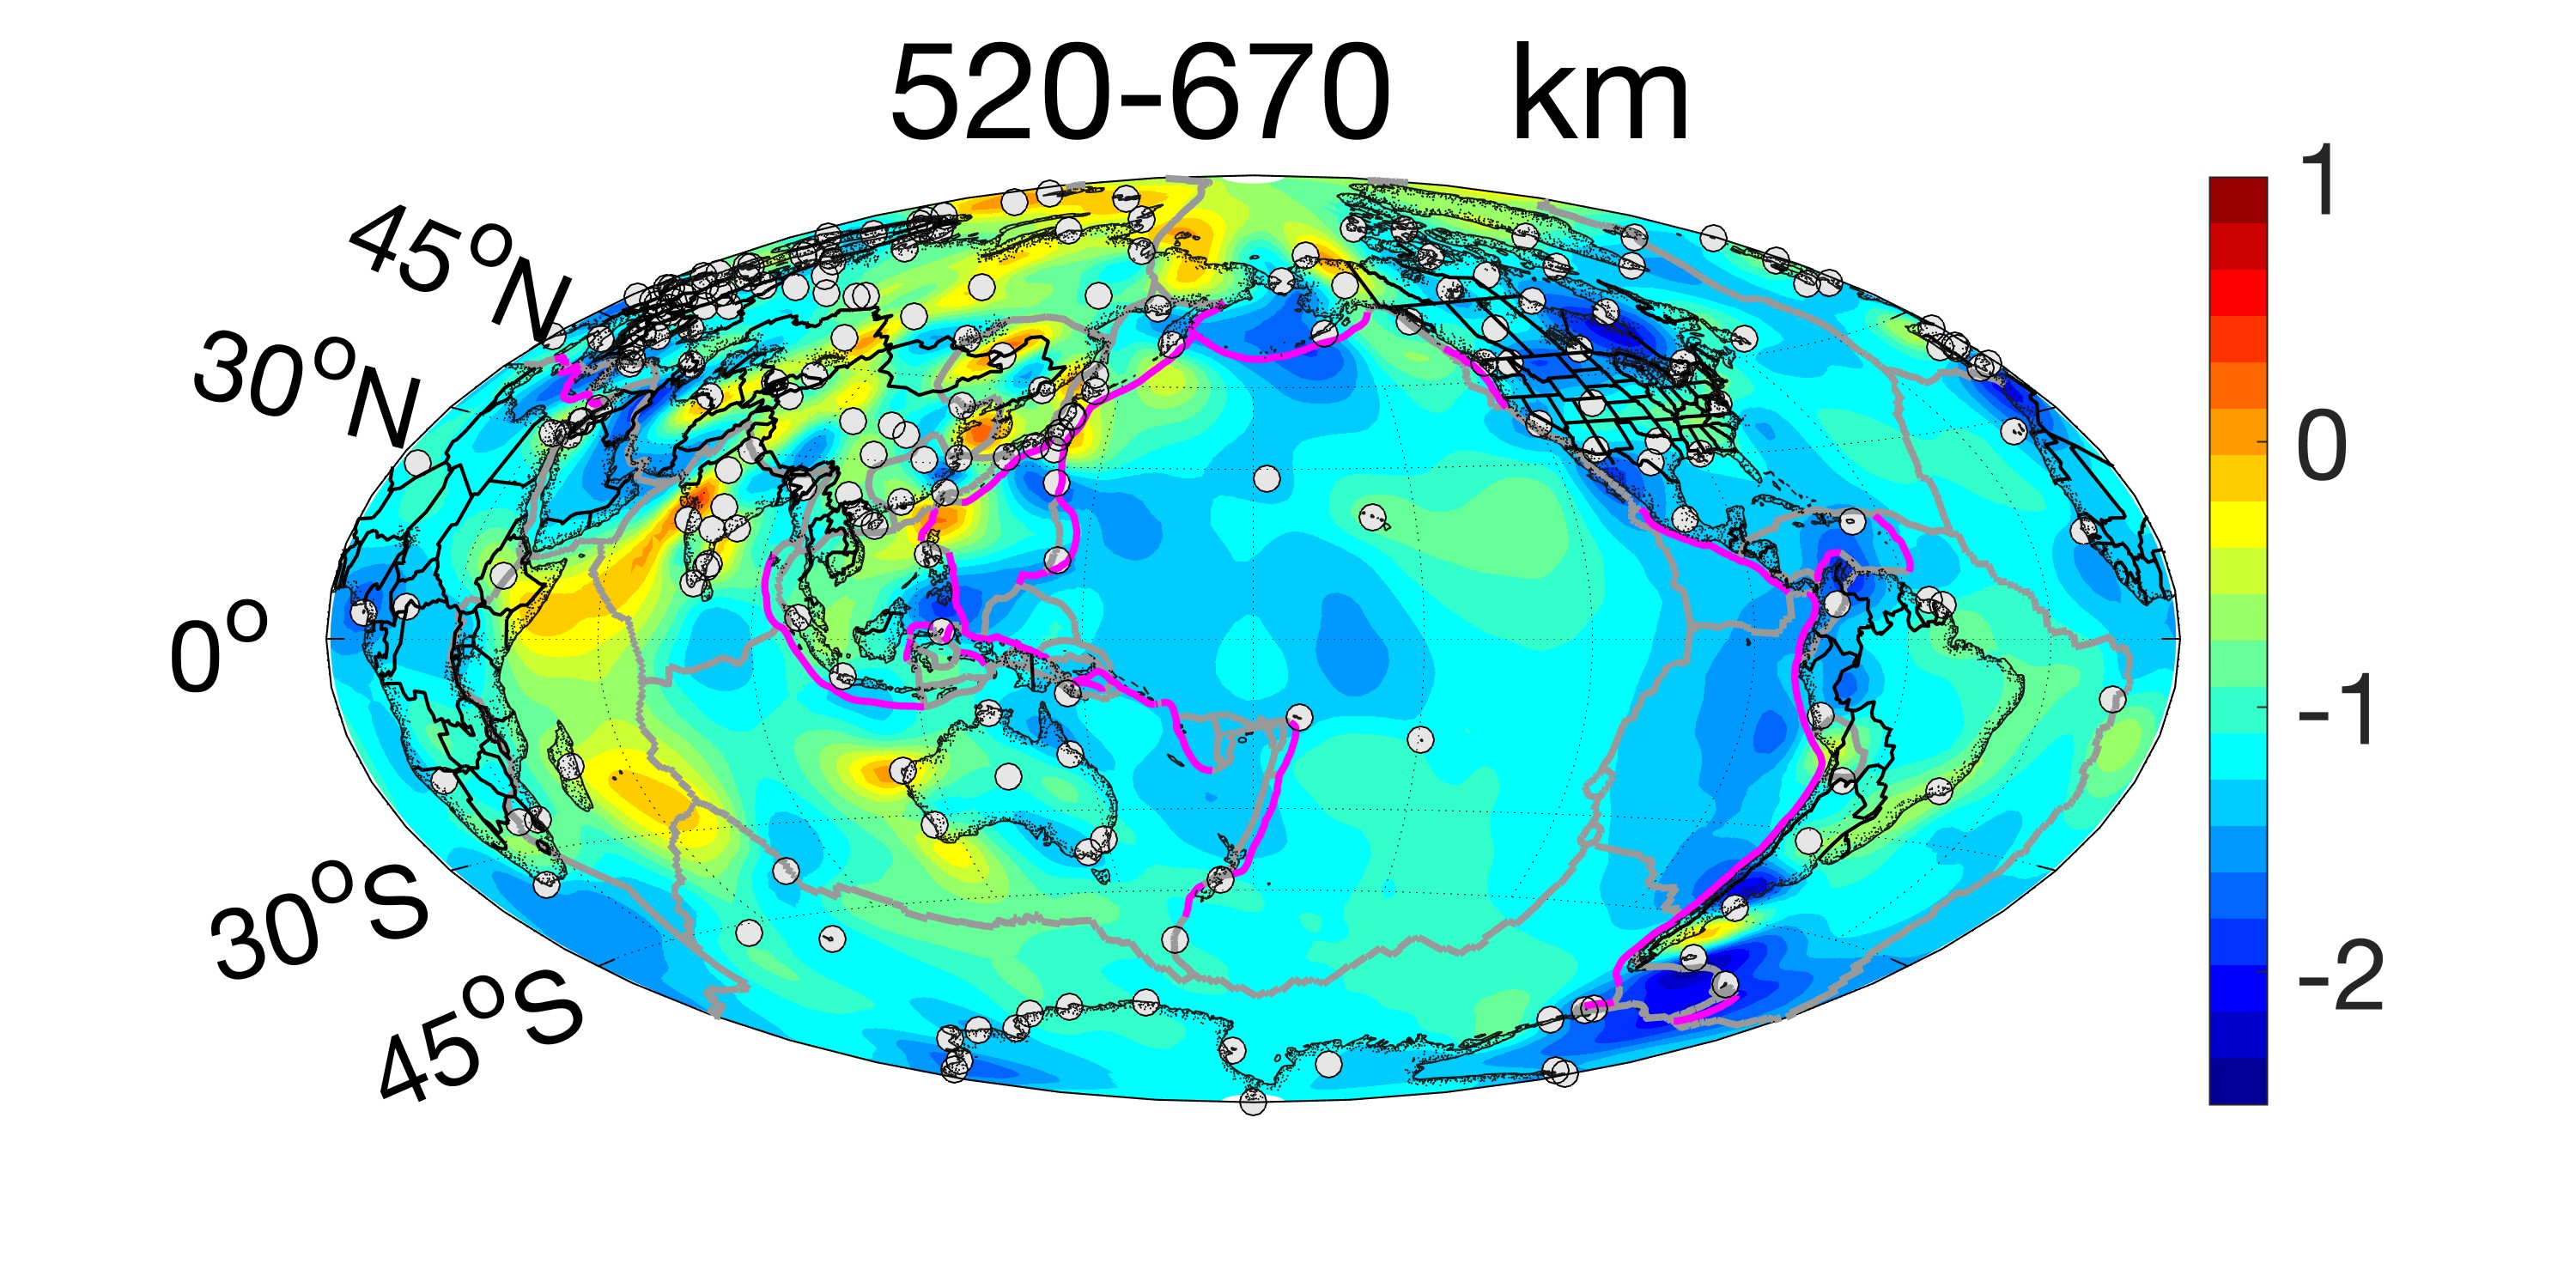 Plot of sigma at the depth of 520 to 670 km